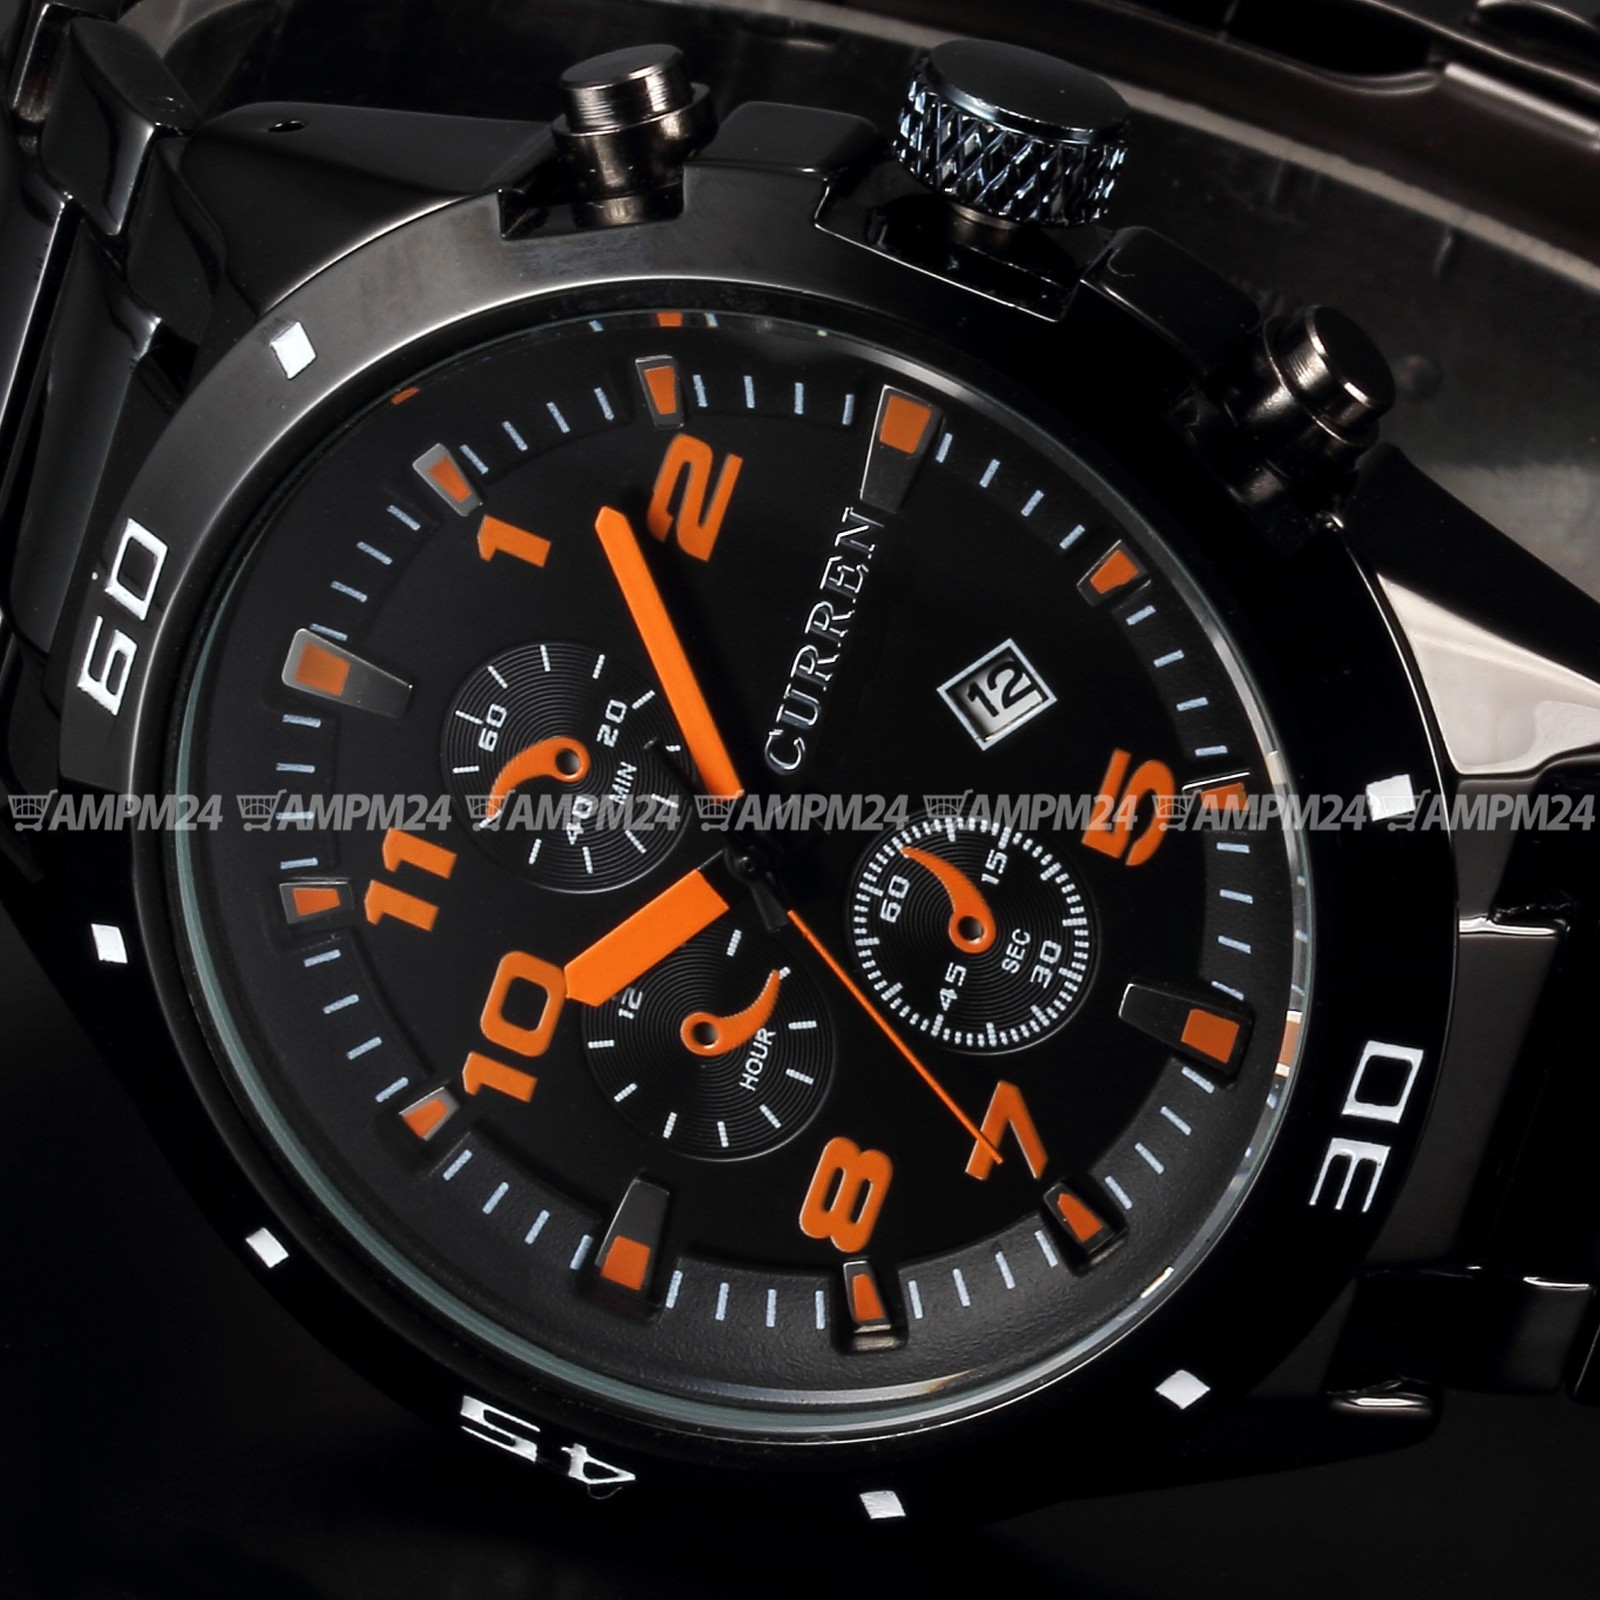 New-Fashion-Mens-Stainless-Steel-Date-Display-Analog-Sport-Quartz-Wrist-Watch